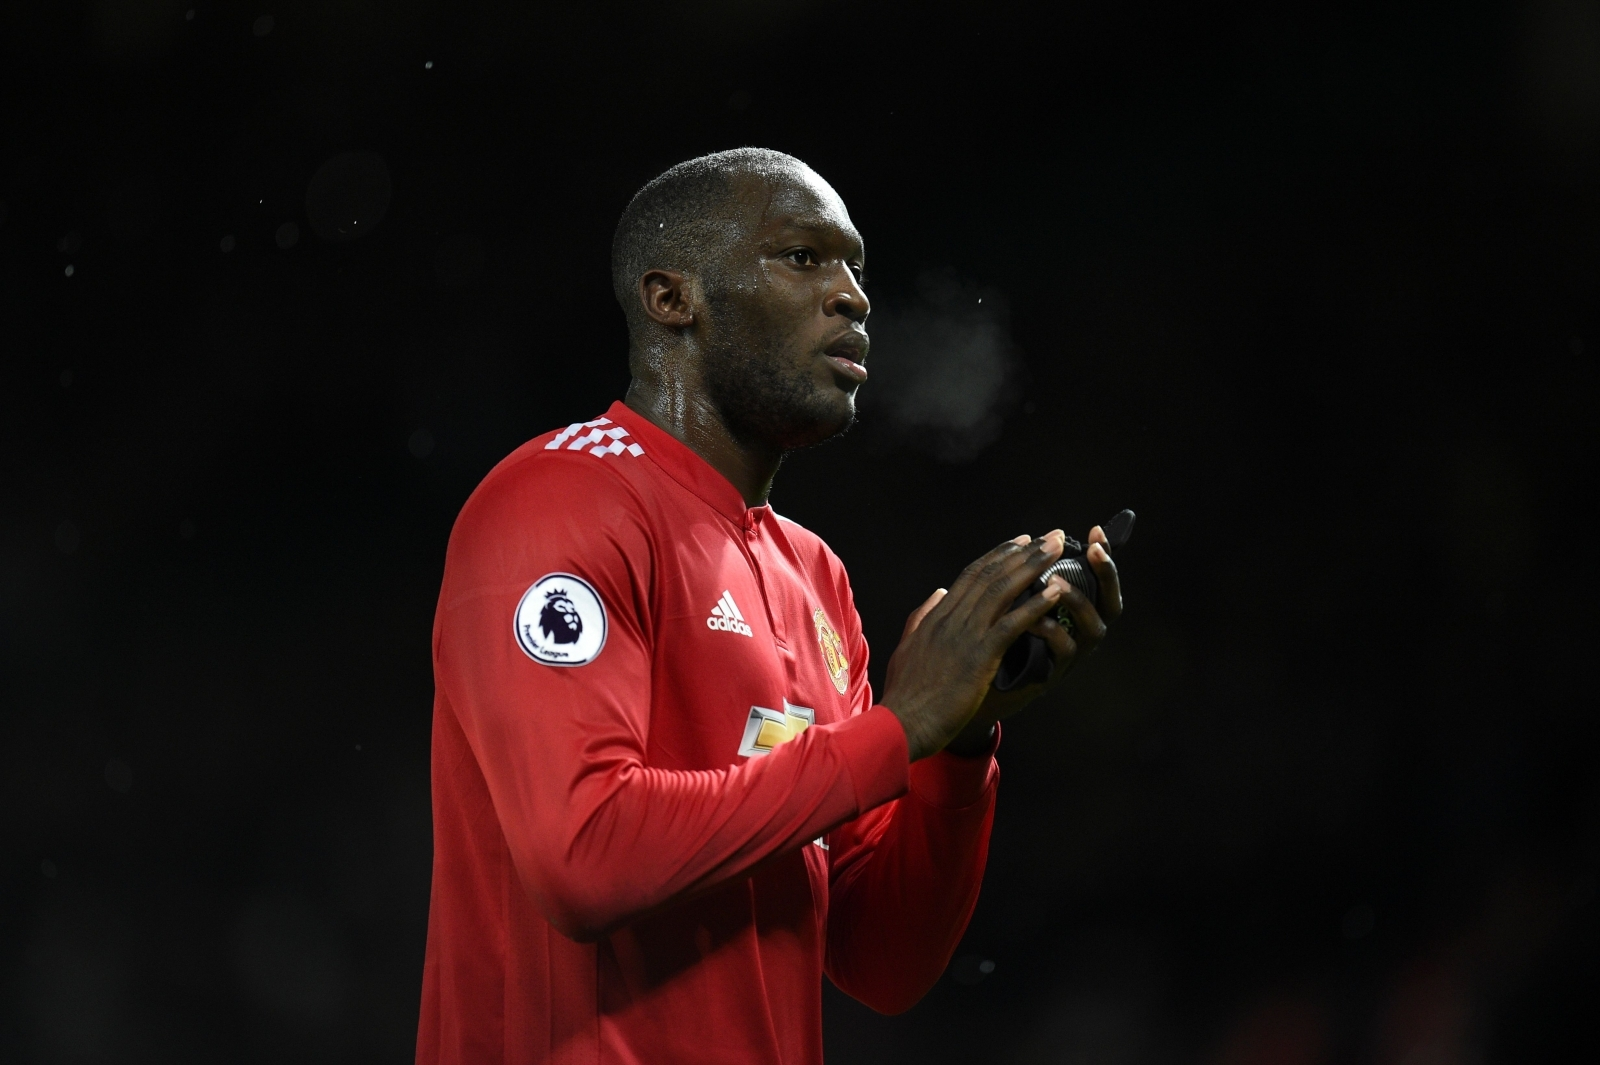 EPL: Why I don't care if Lukaku scores or not - Mourinho